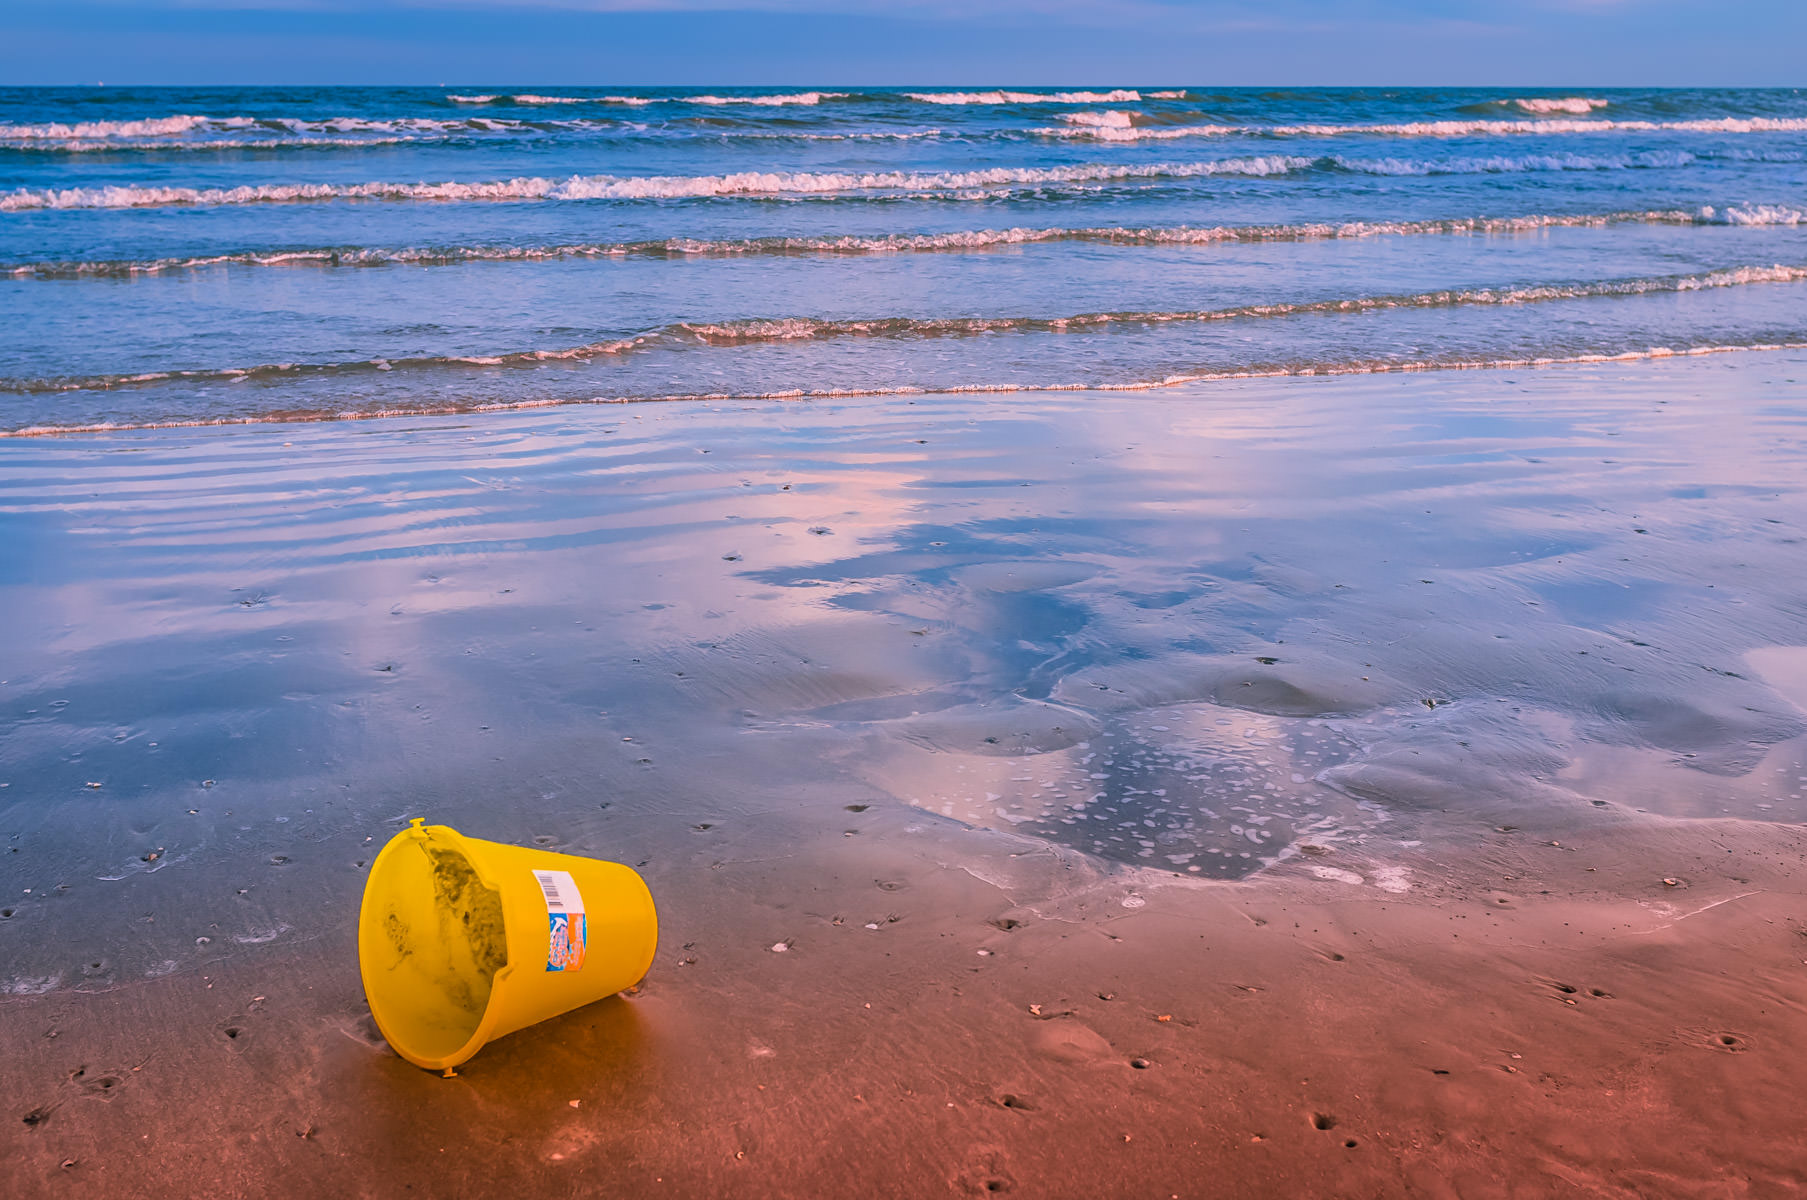 A lonely sand bucket on the Galveston Island, Texas beach.